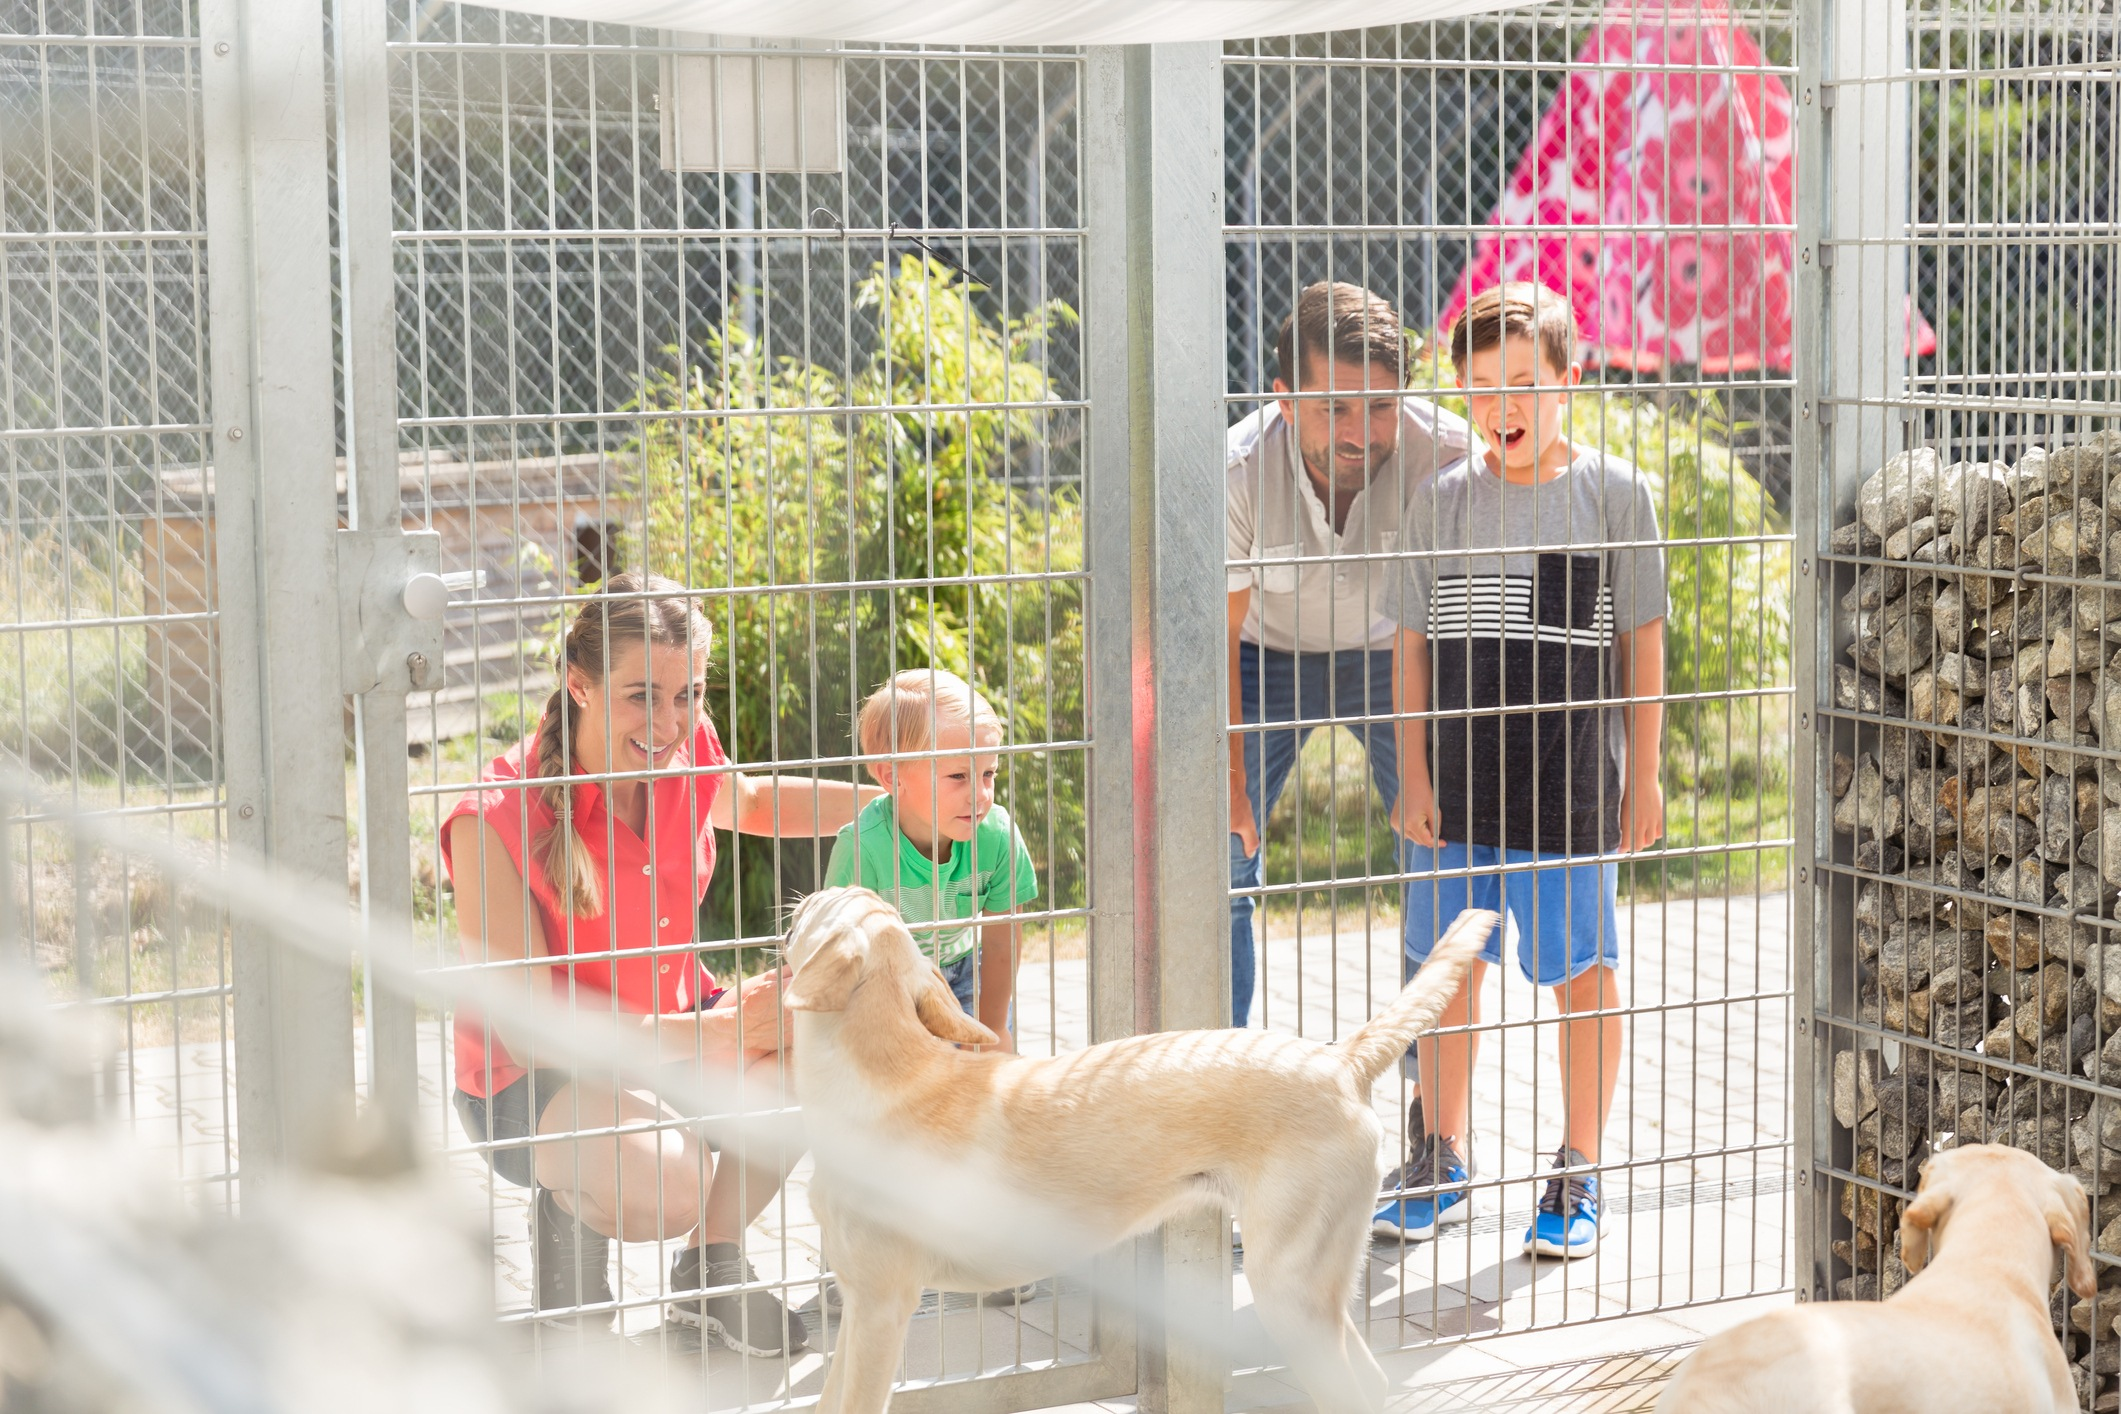 Family getting to know dogs in animal shelter